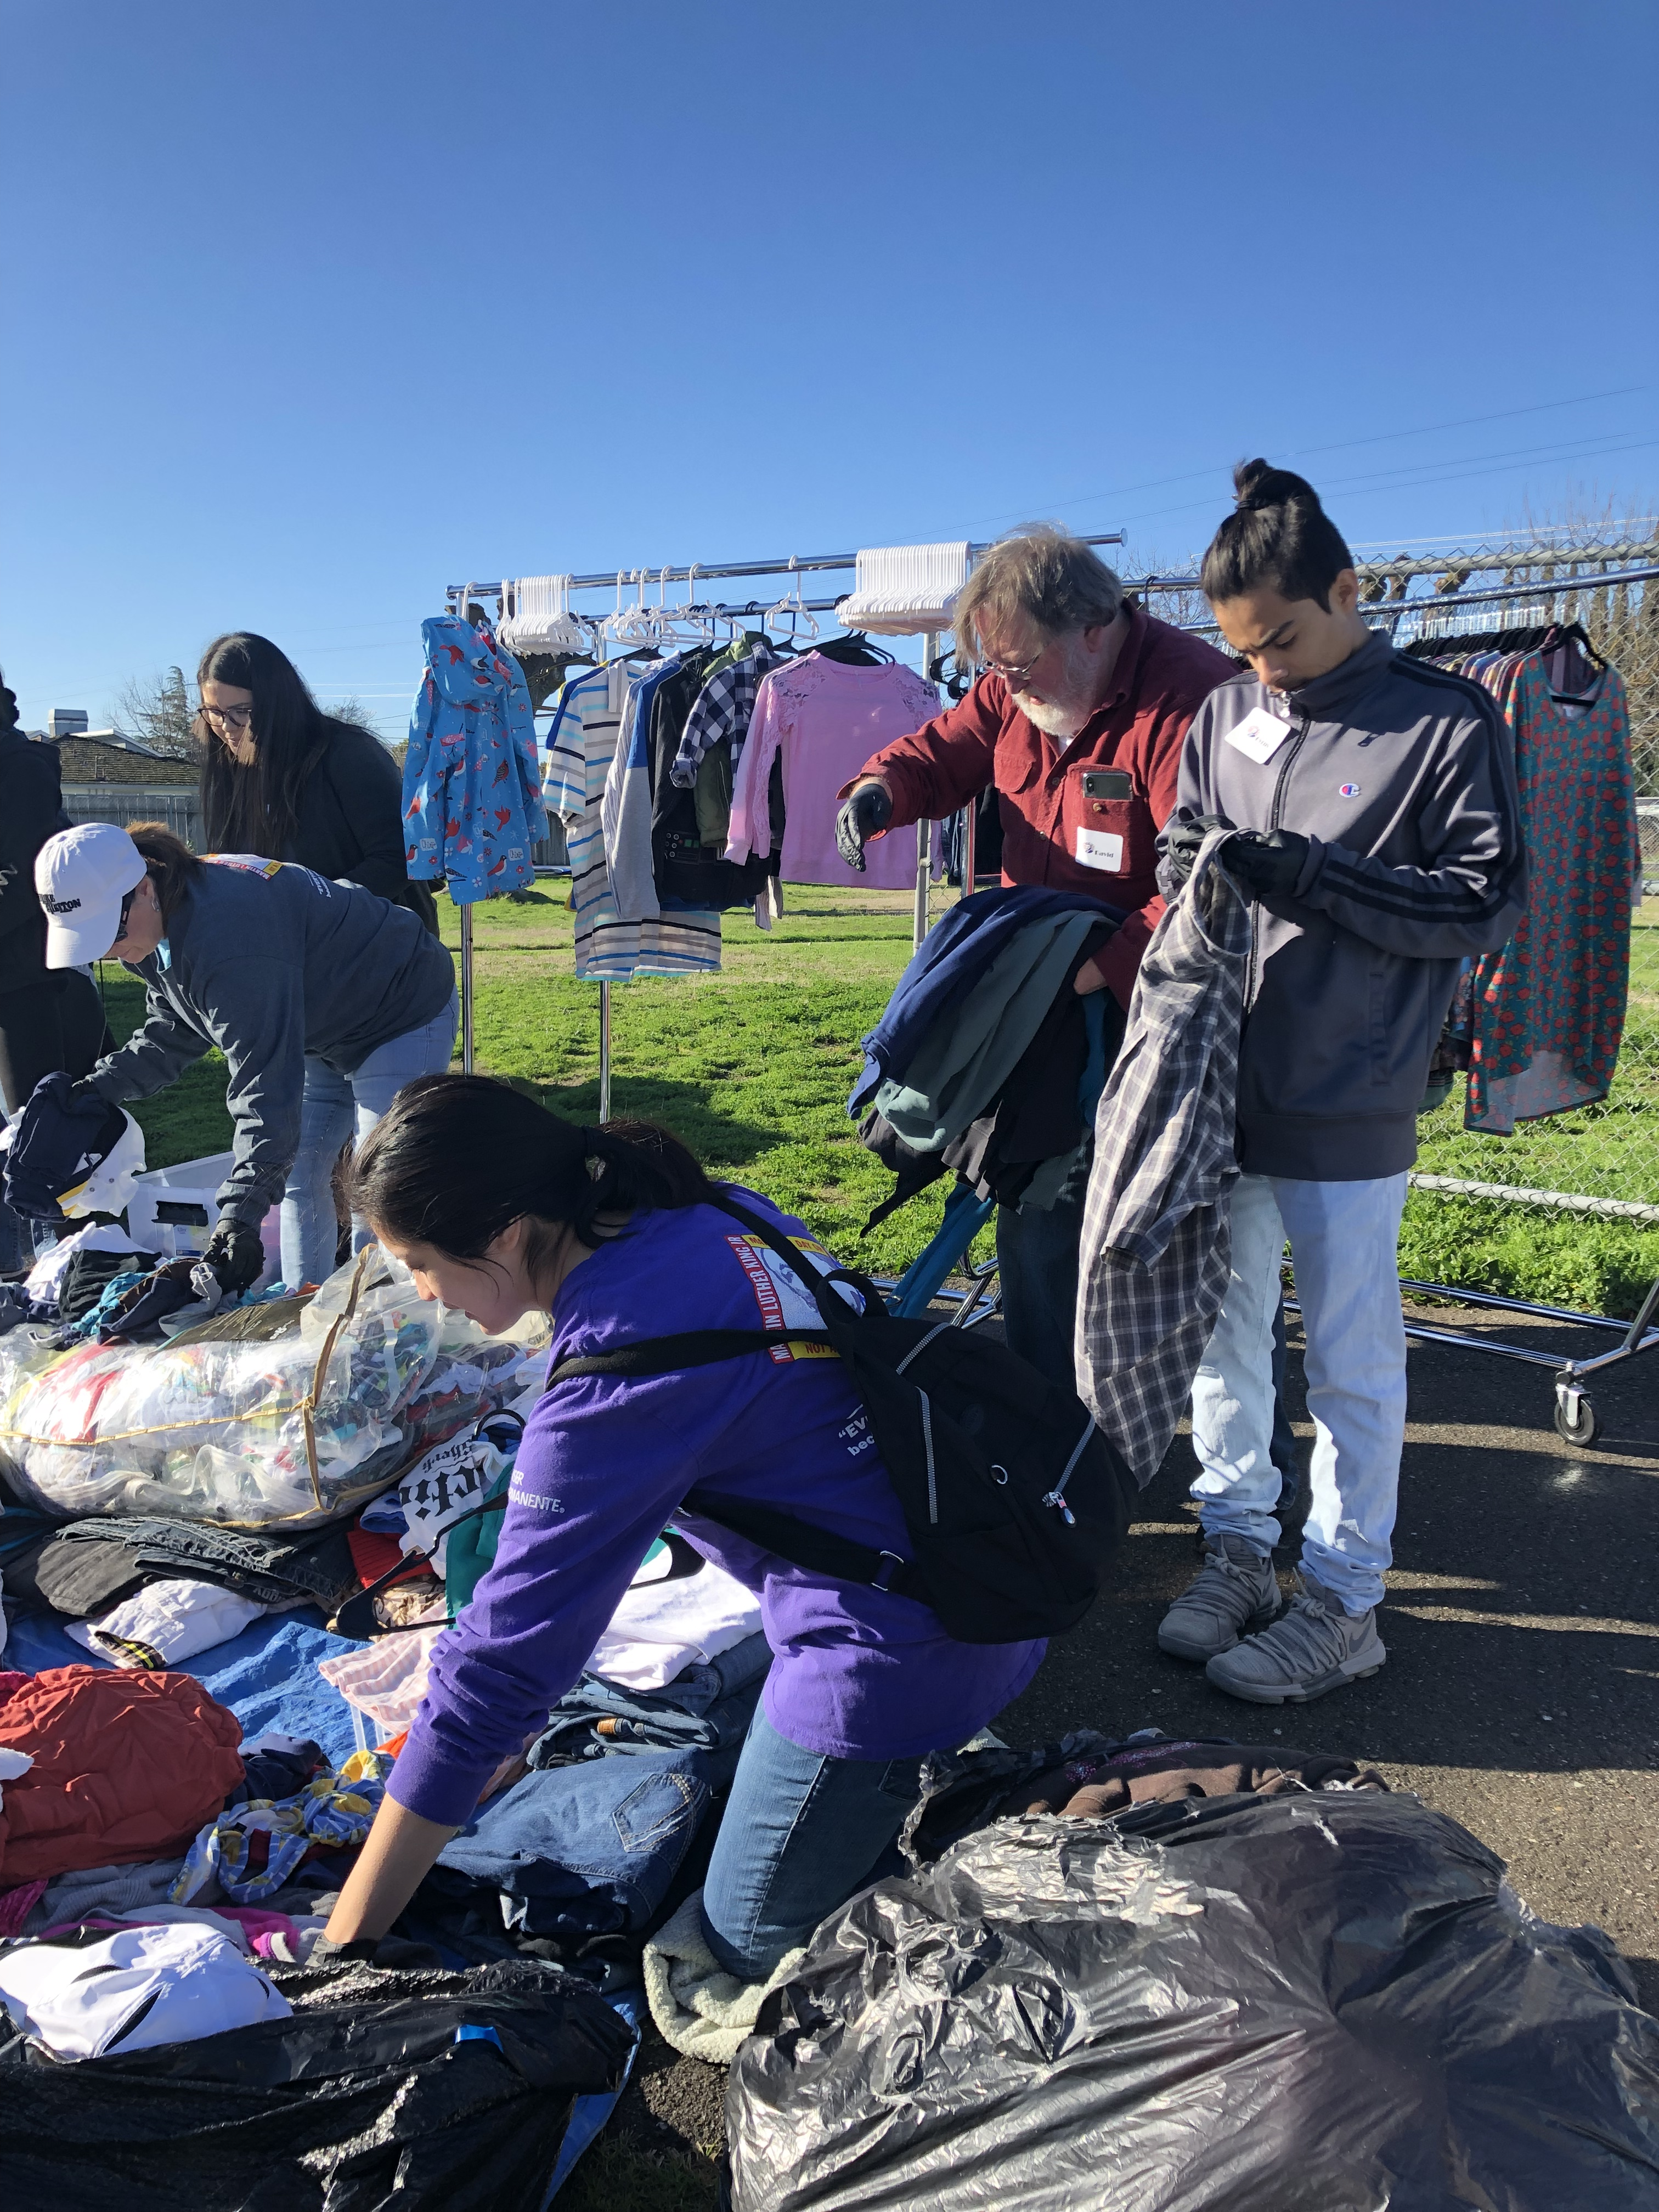 People separating clothing at a homeless shelter